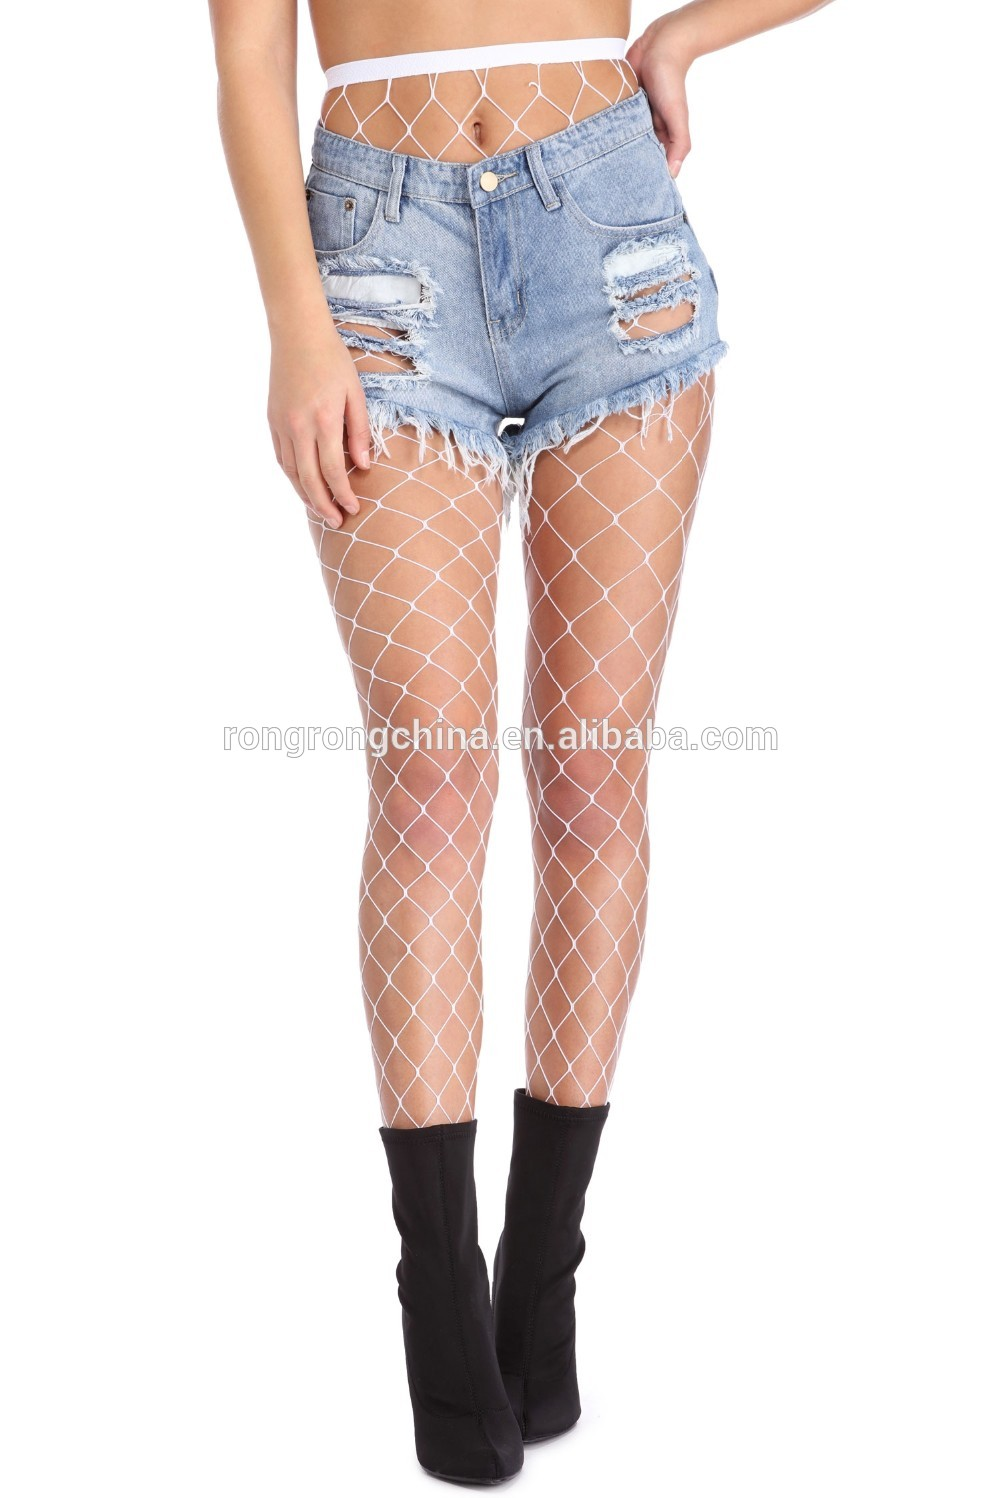 94660c7dc9b6b Hot Selling Cheap Price Fish Net Stockings Fishnet Under Jeans Trend ...